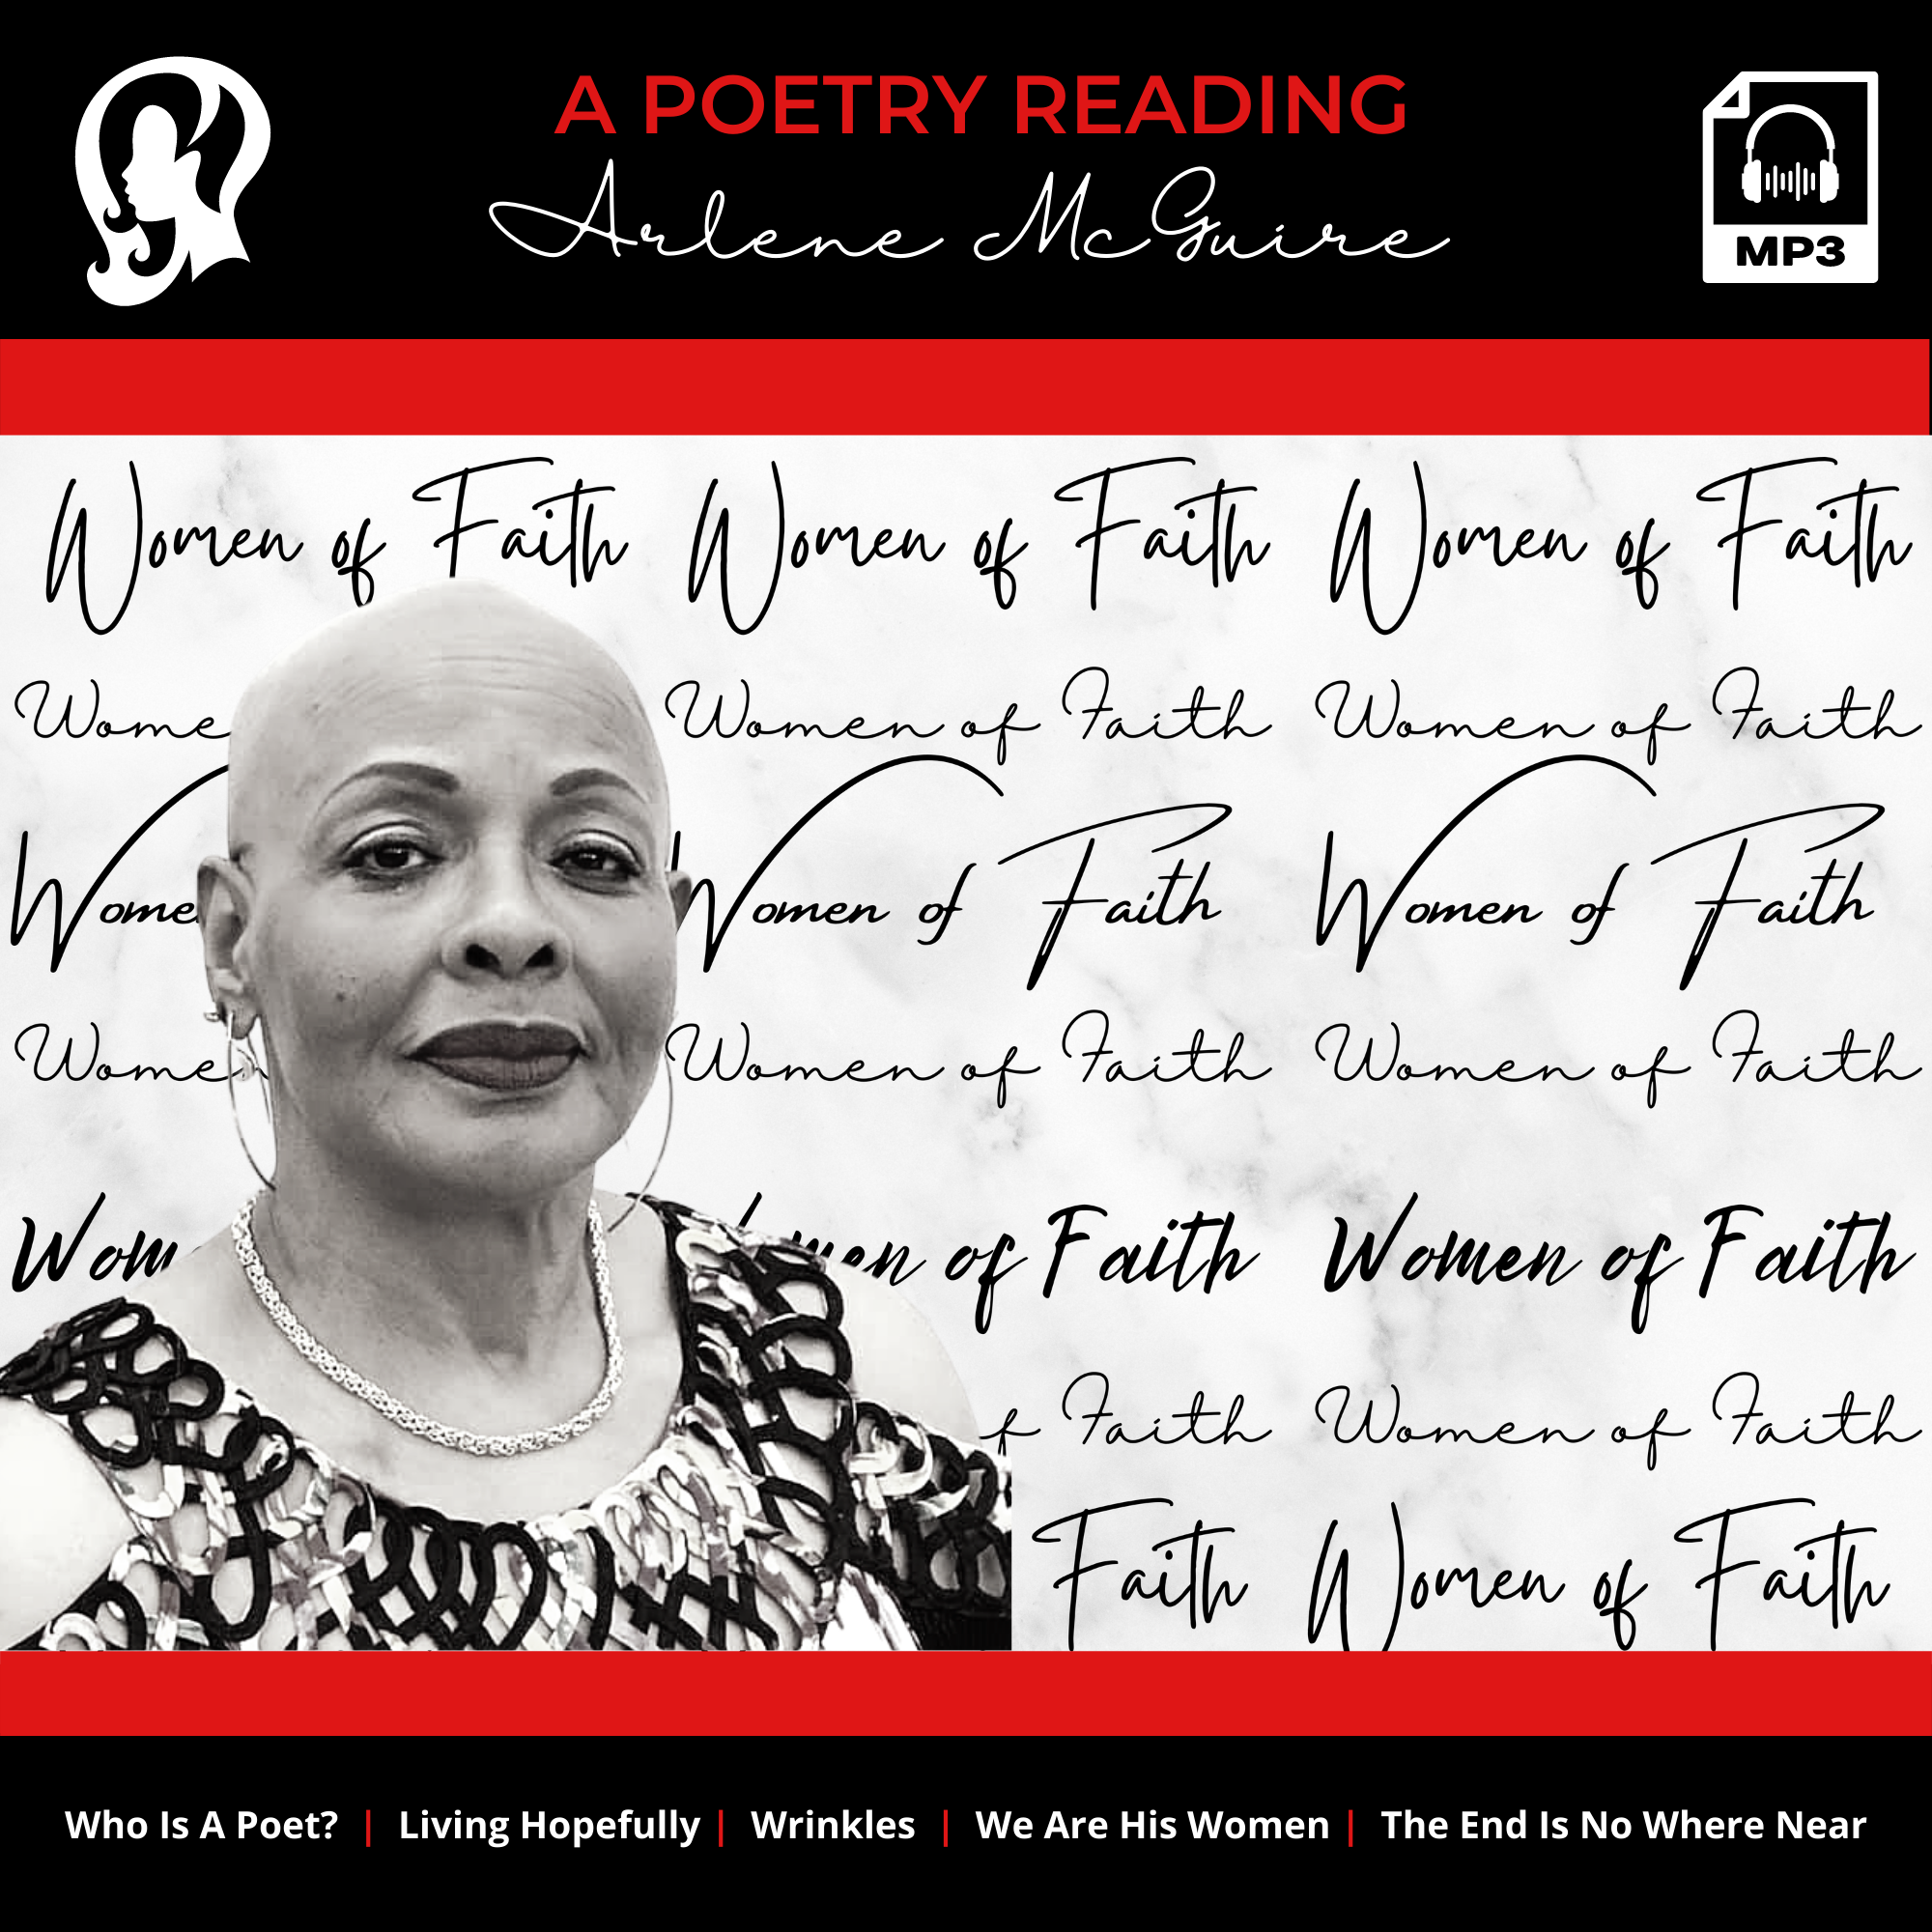 EP - A Poetry Reading / Arlene McGuire